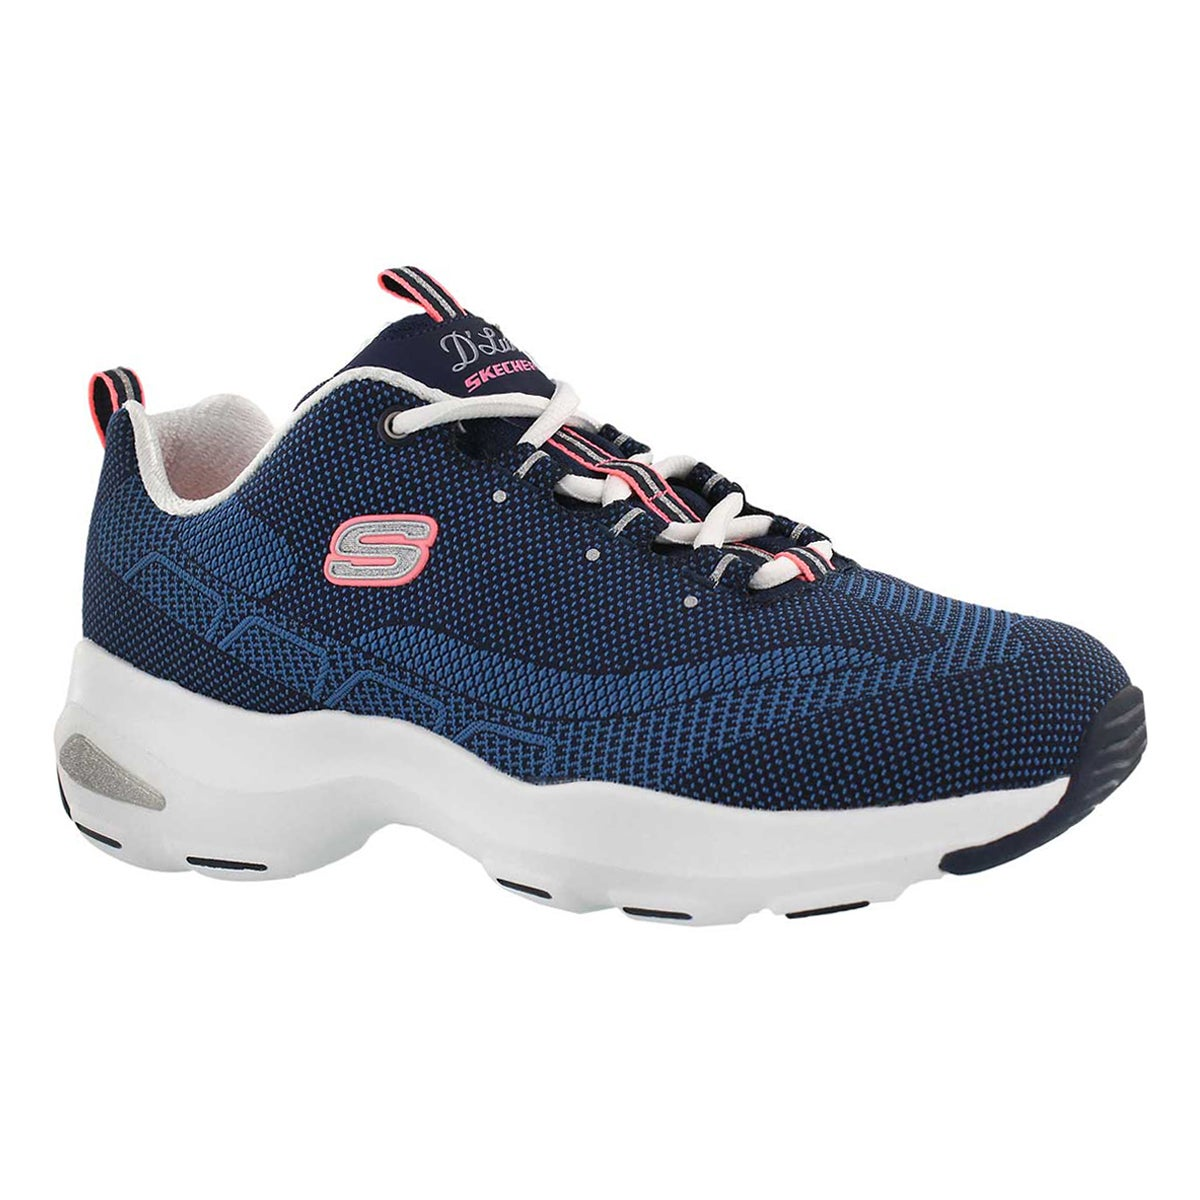 Lds D'Lites Ultra navy lace up snkr